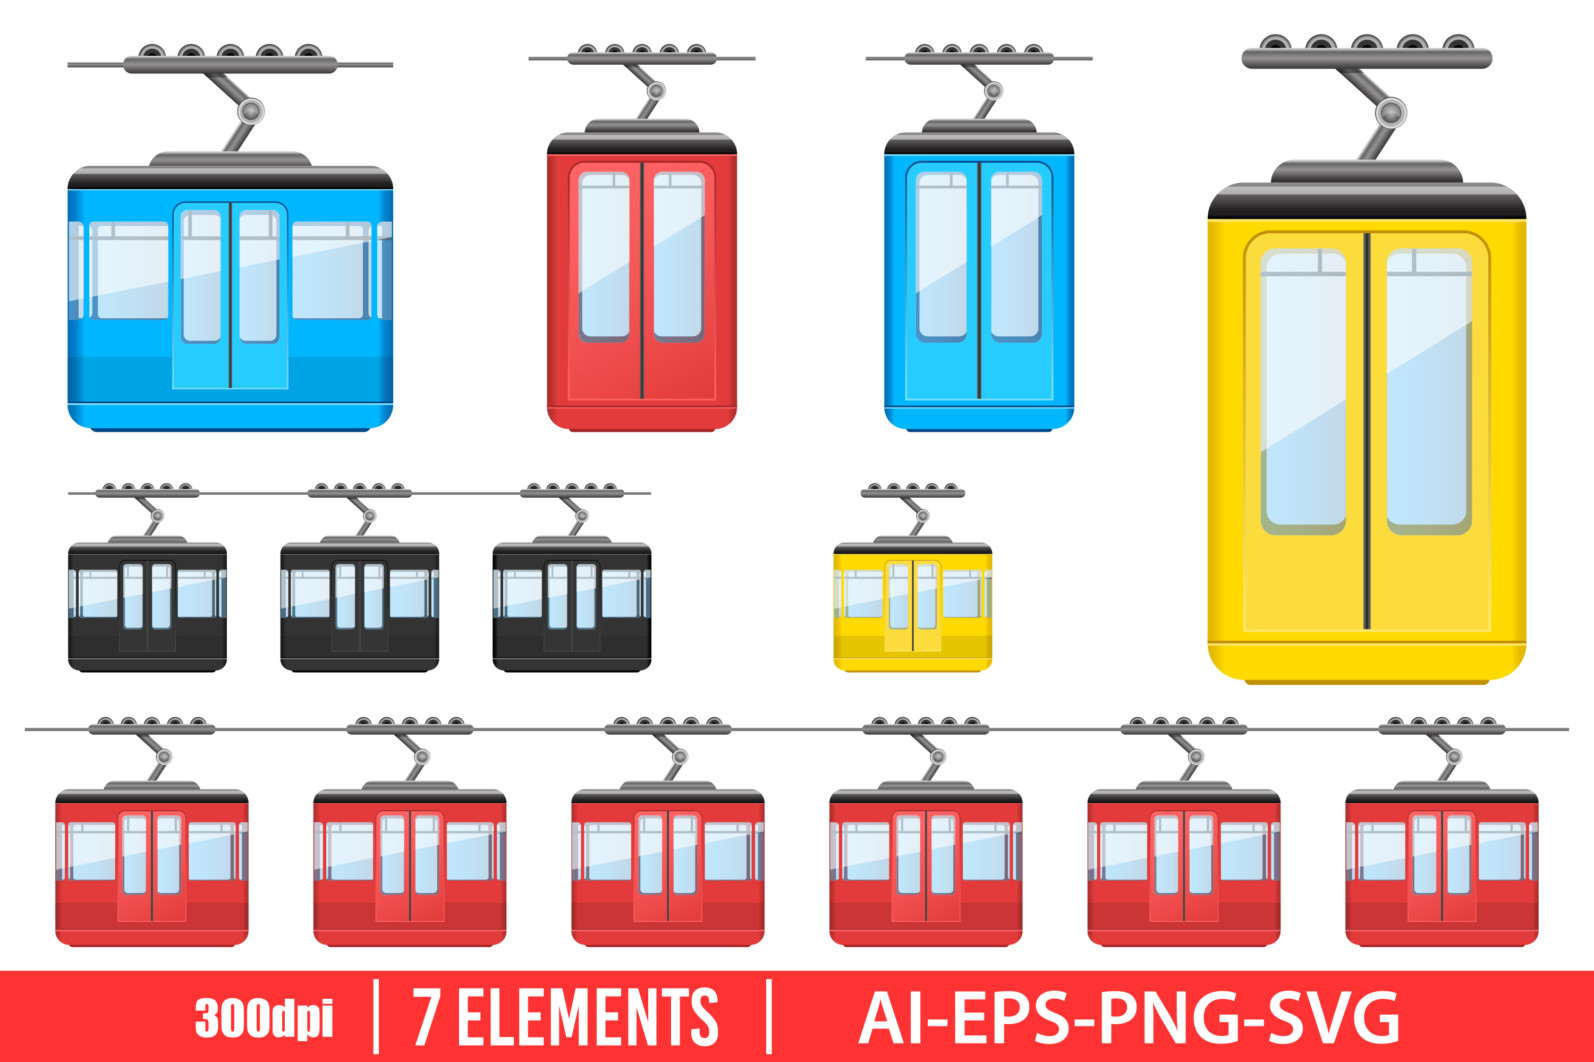 Cableway funicular clipart vector design illustration. Cableway funicular set. Vector Clipart Print - FURNICULAR scaled -